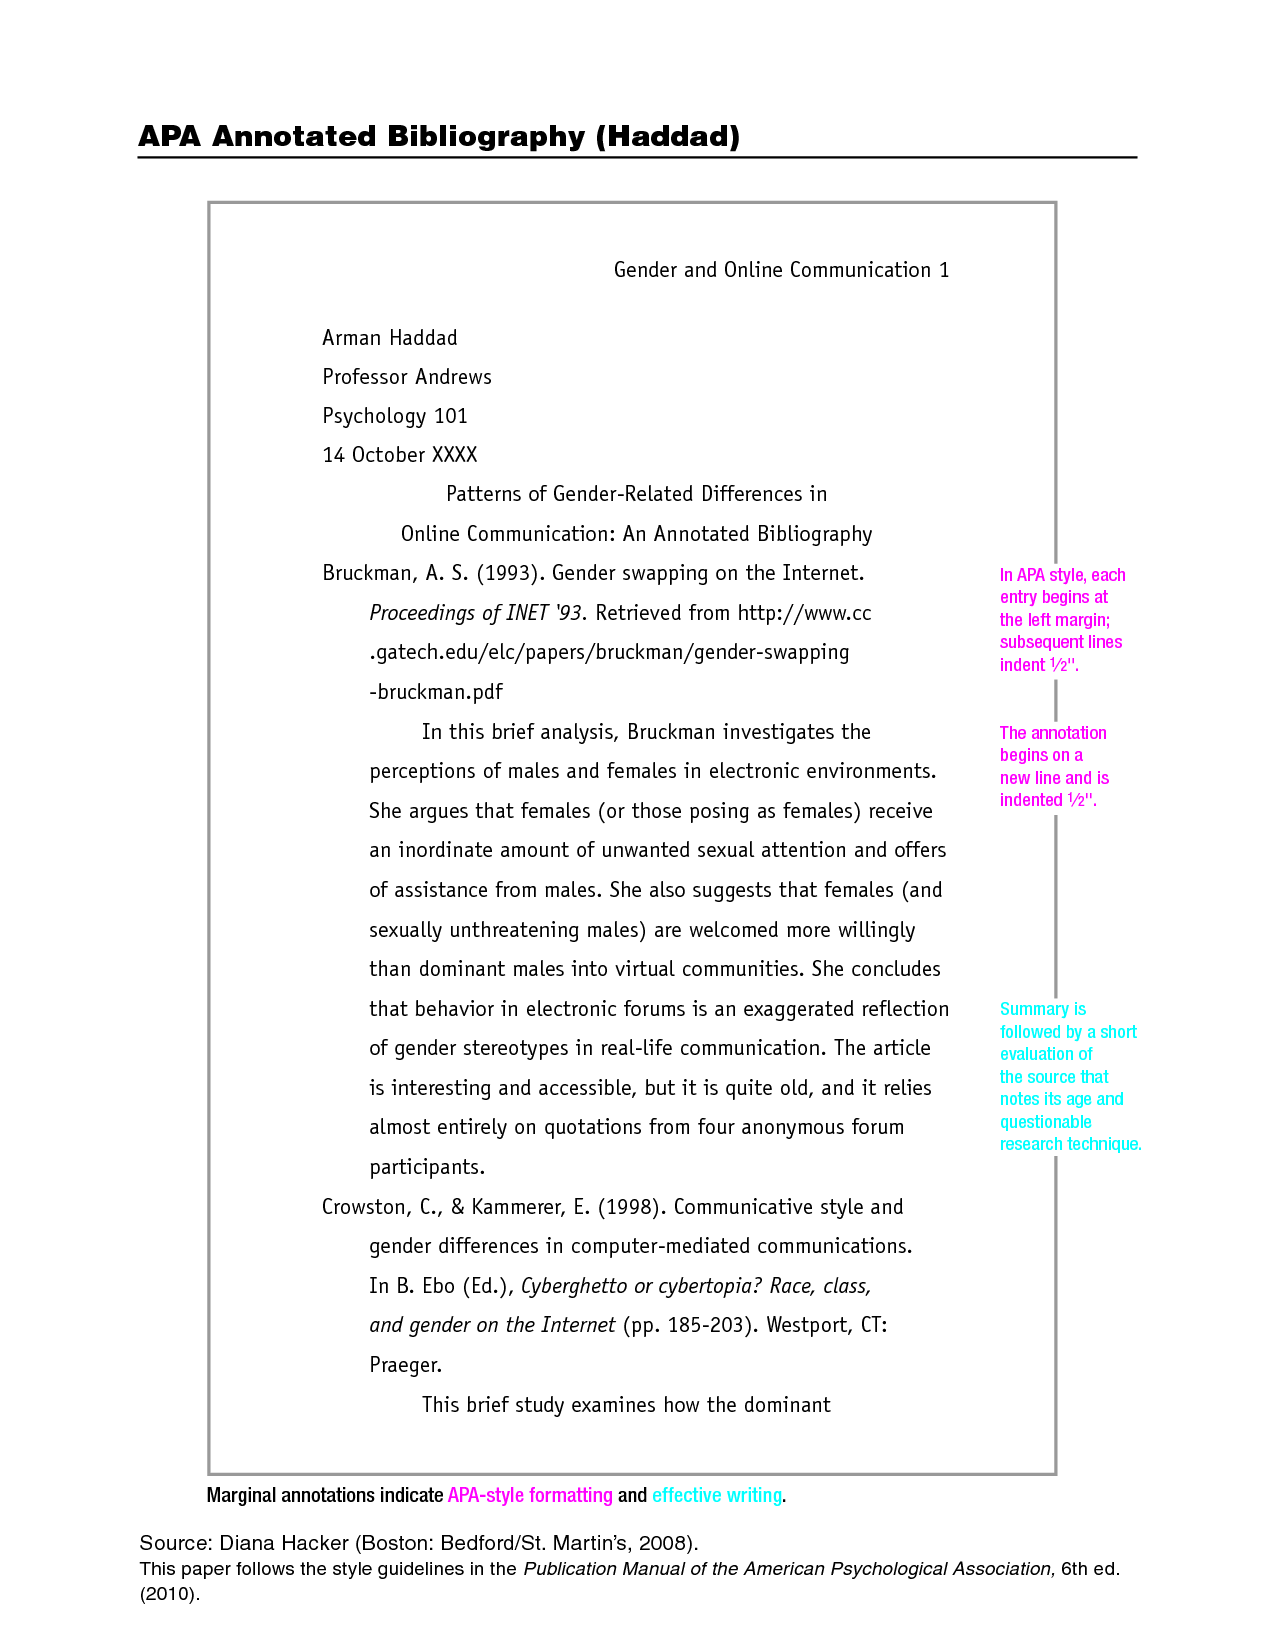 002 Apa Paper Template Si6pk8fz Essay Best Outline Style Structure Format Word 2007 Full